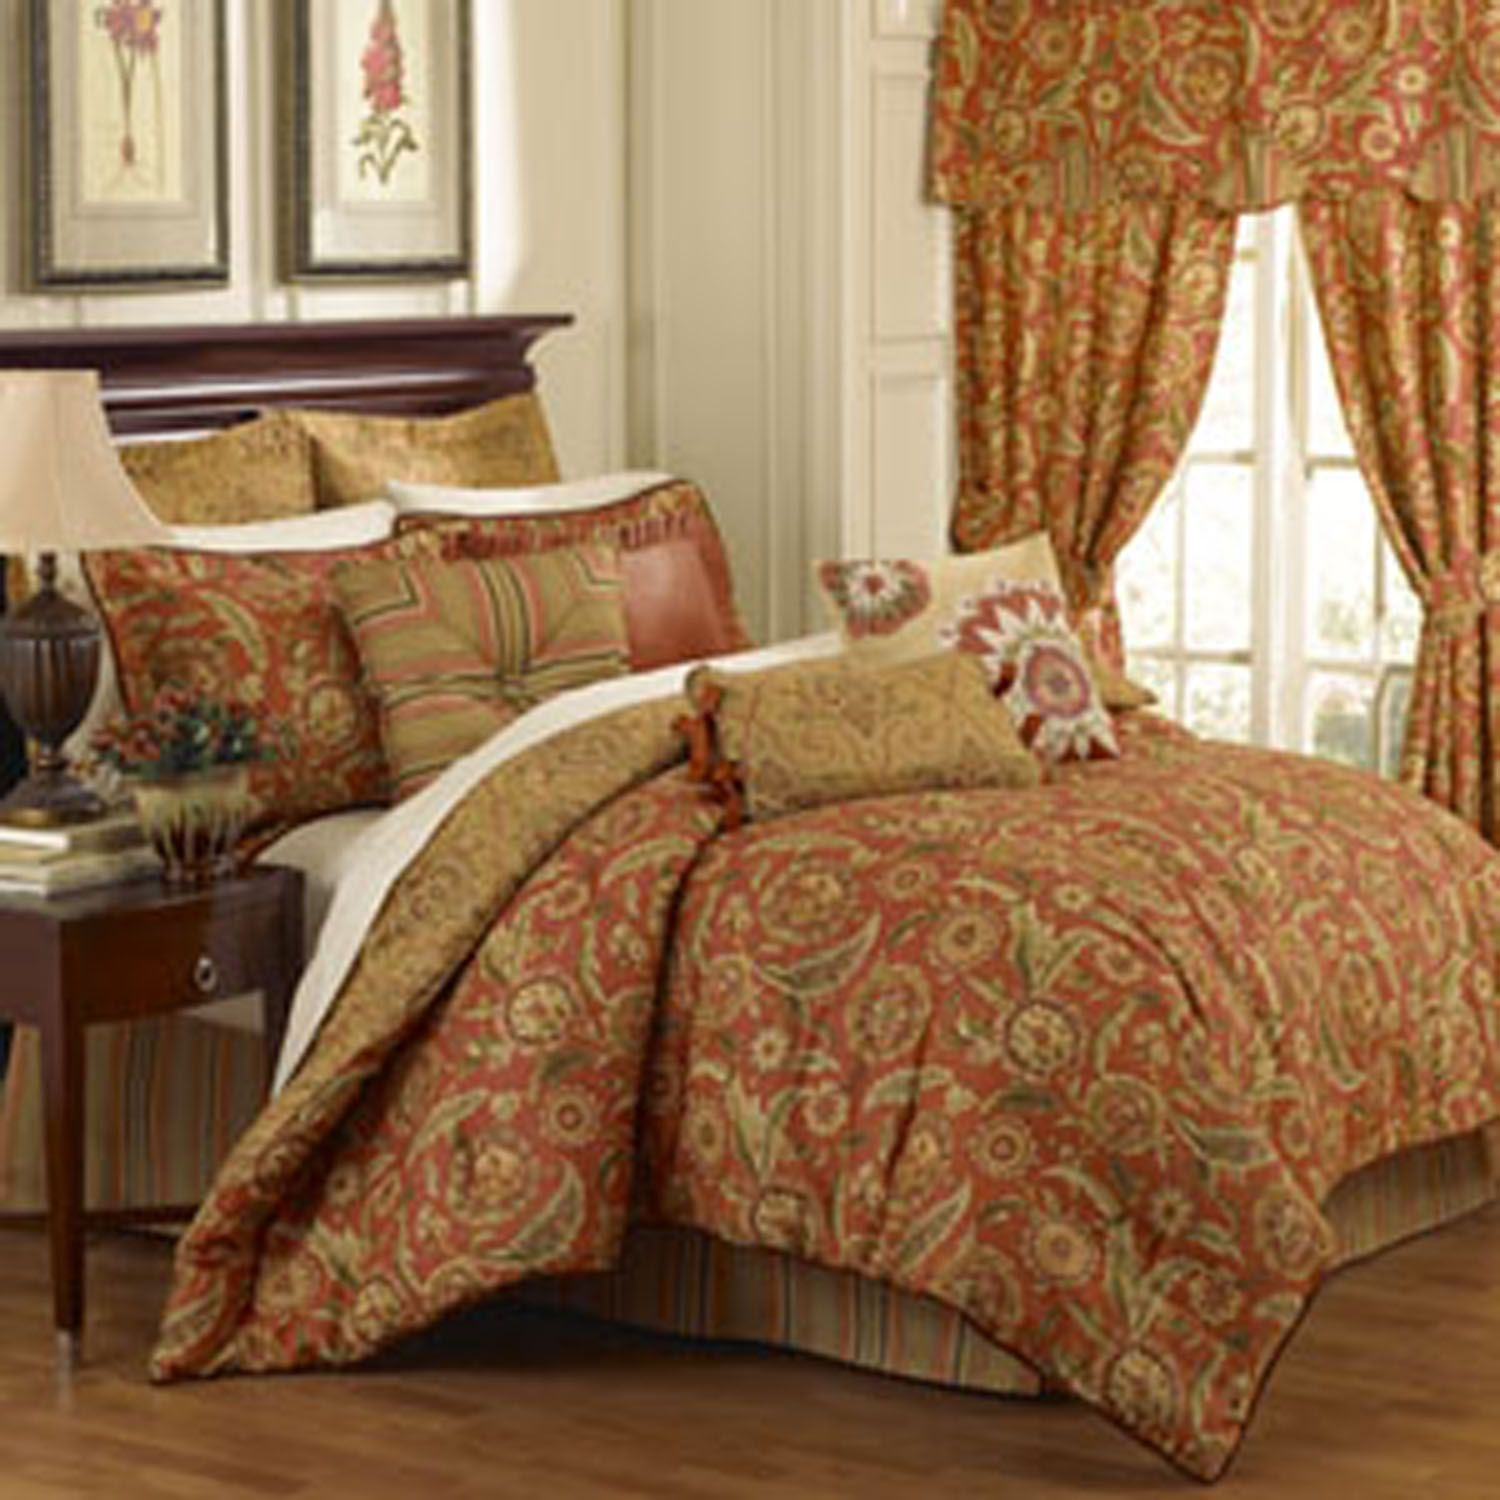 Waverly Grand Bazaar Bedding Collection: Queen Size